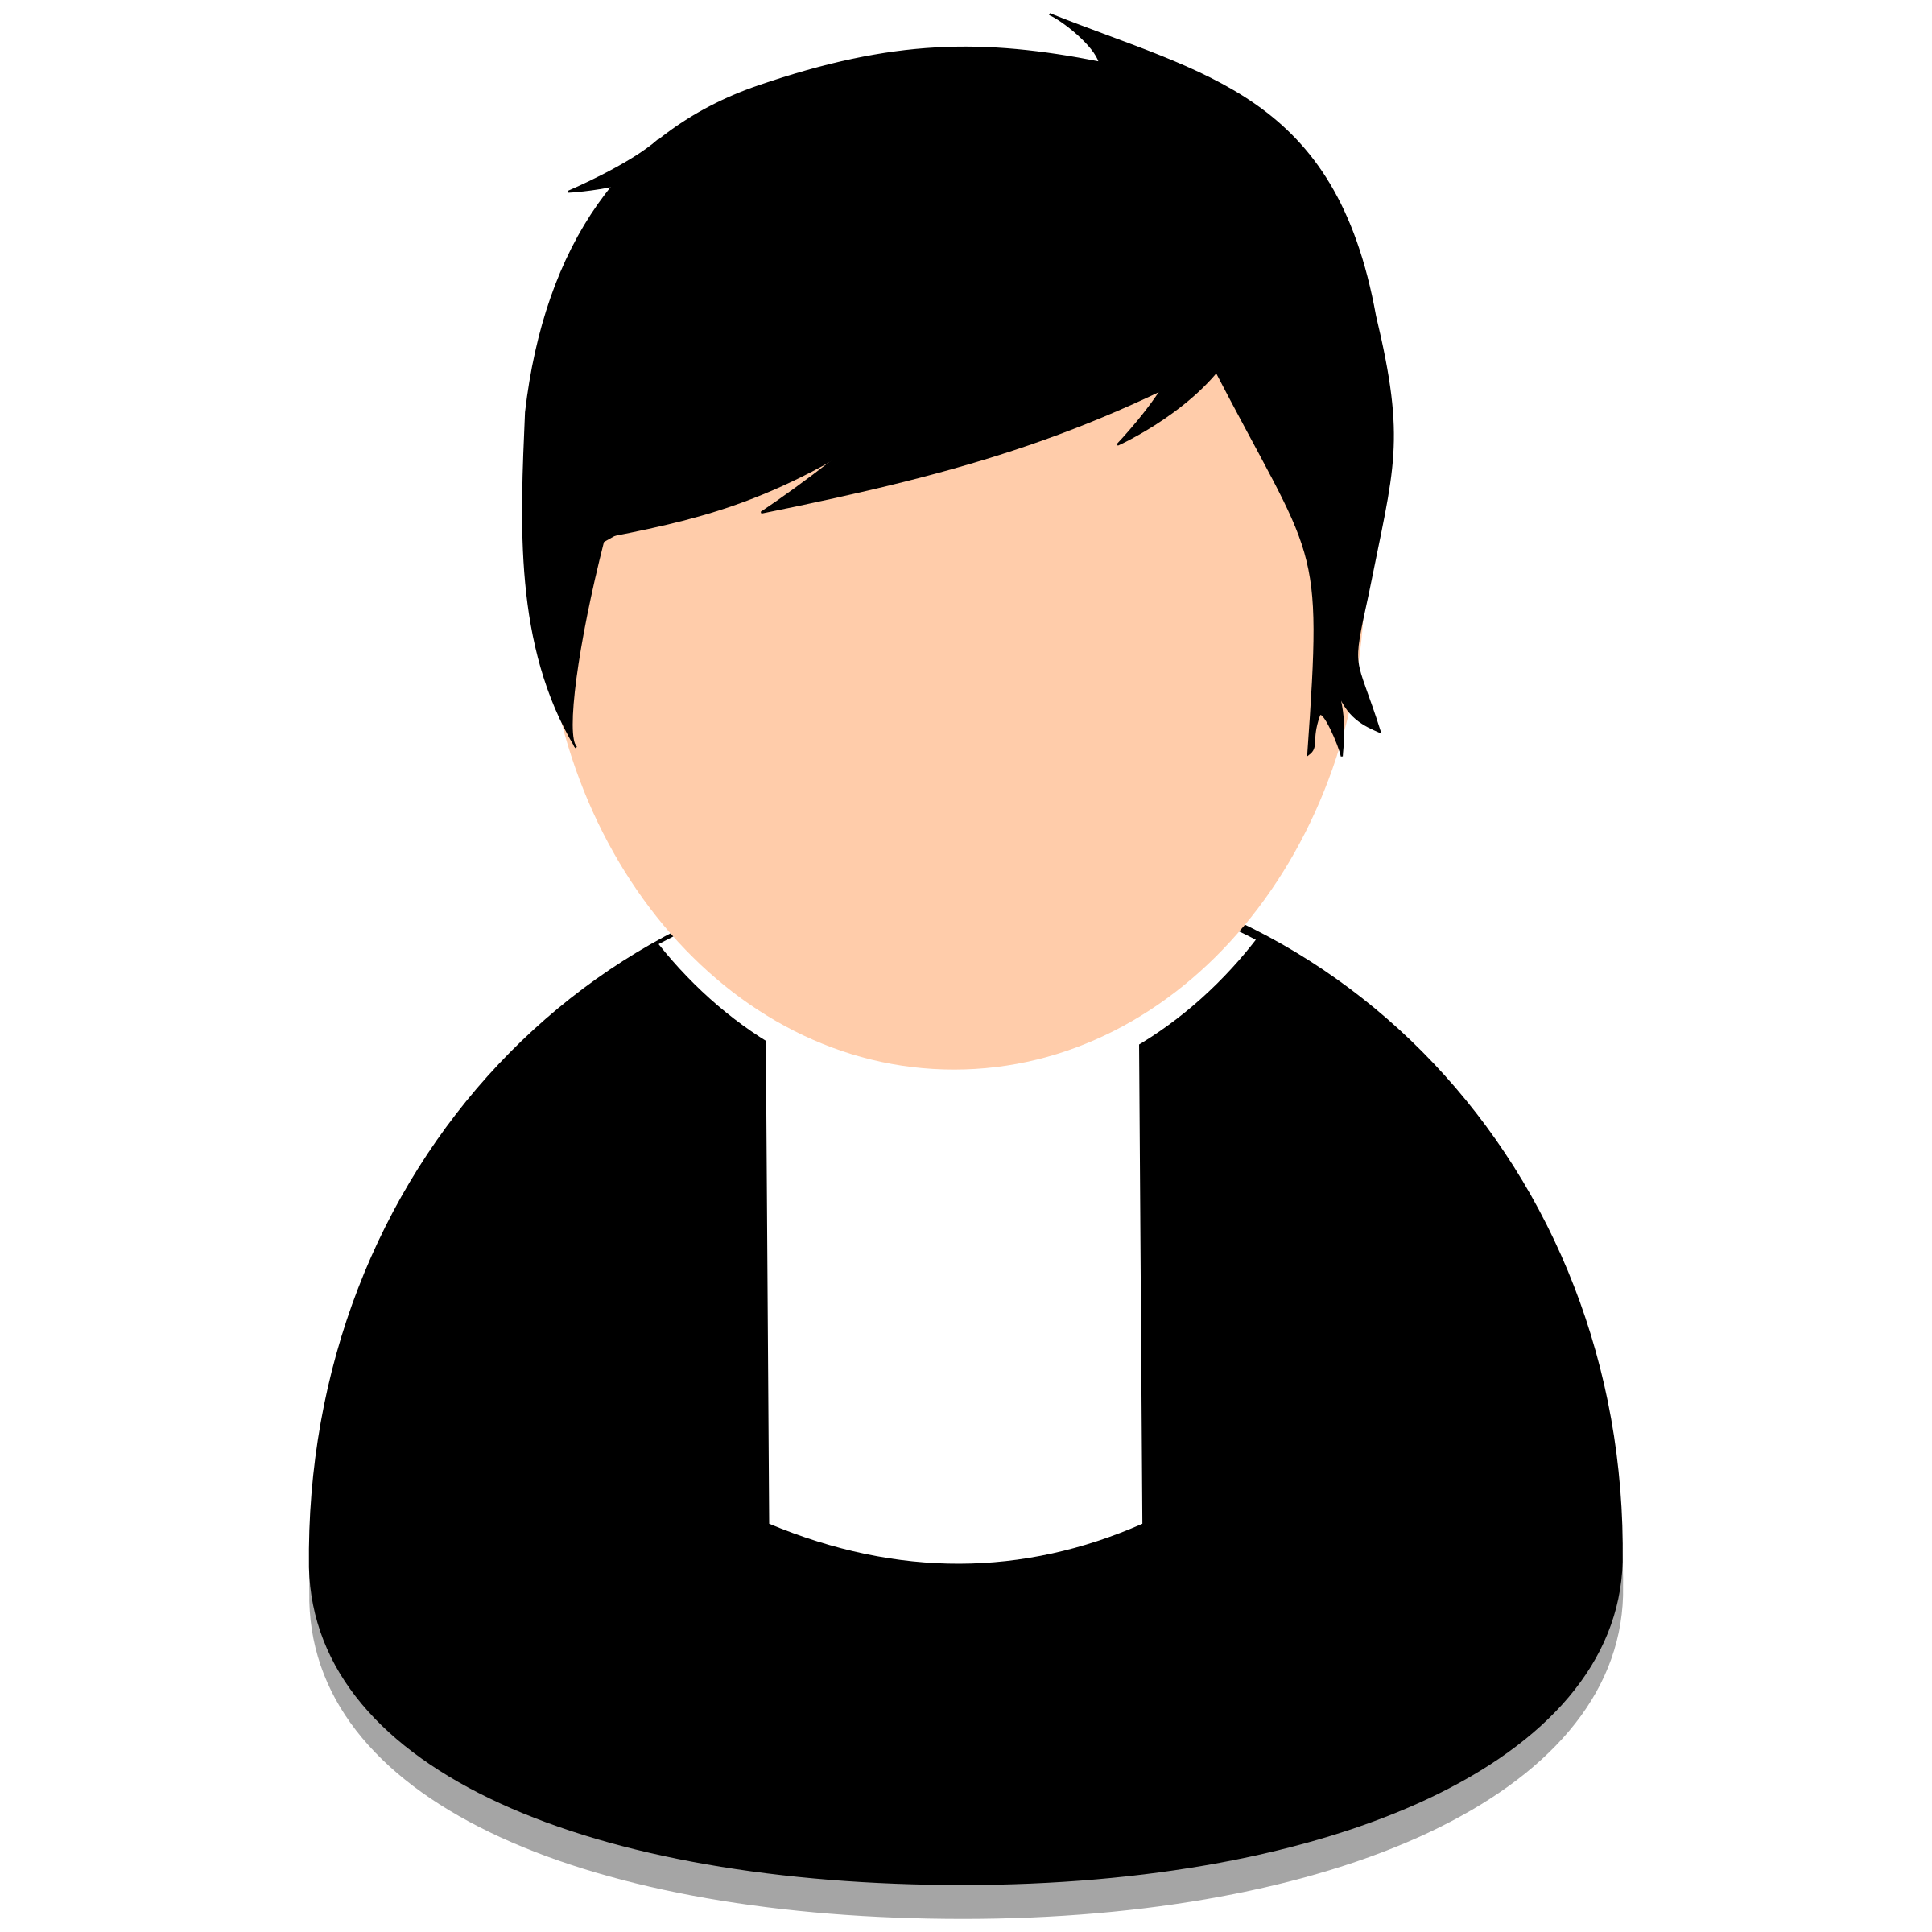 Pastor avatar big image. Funeral clipart confirmation